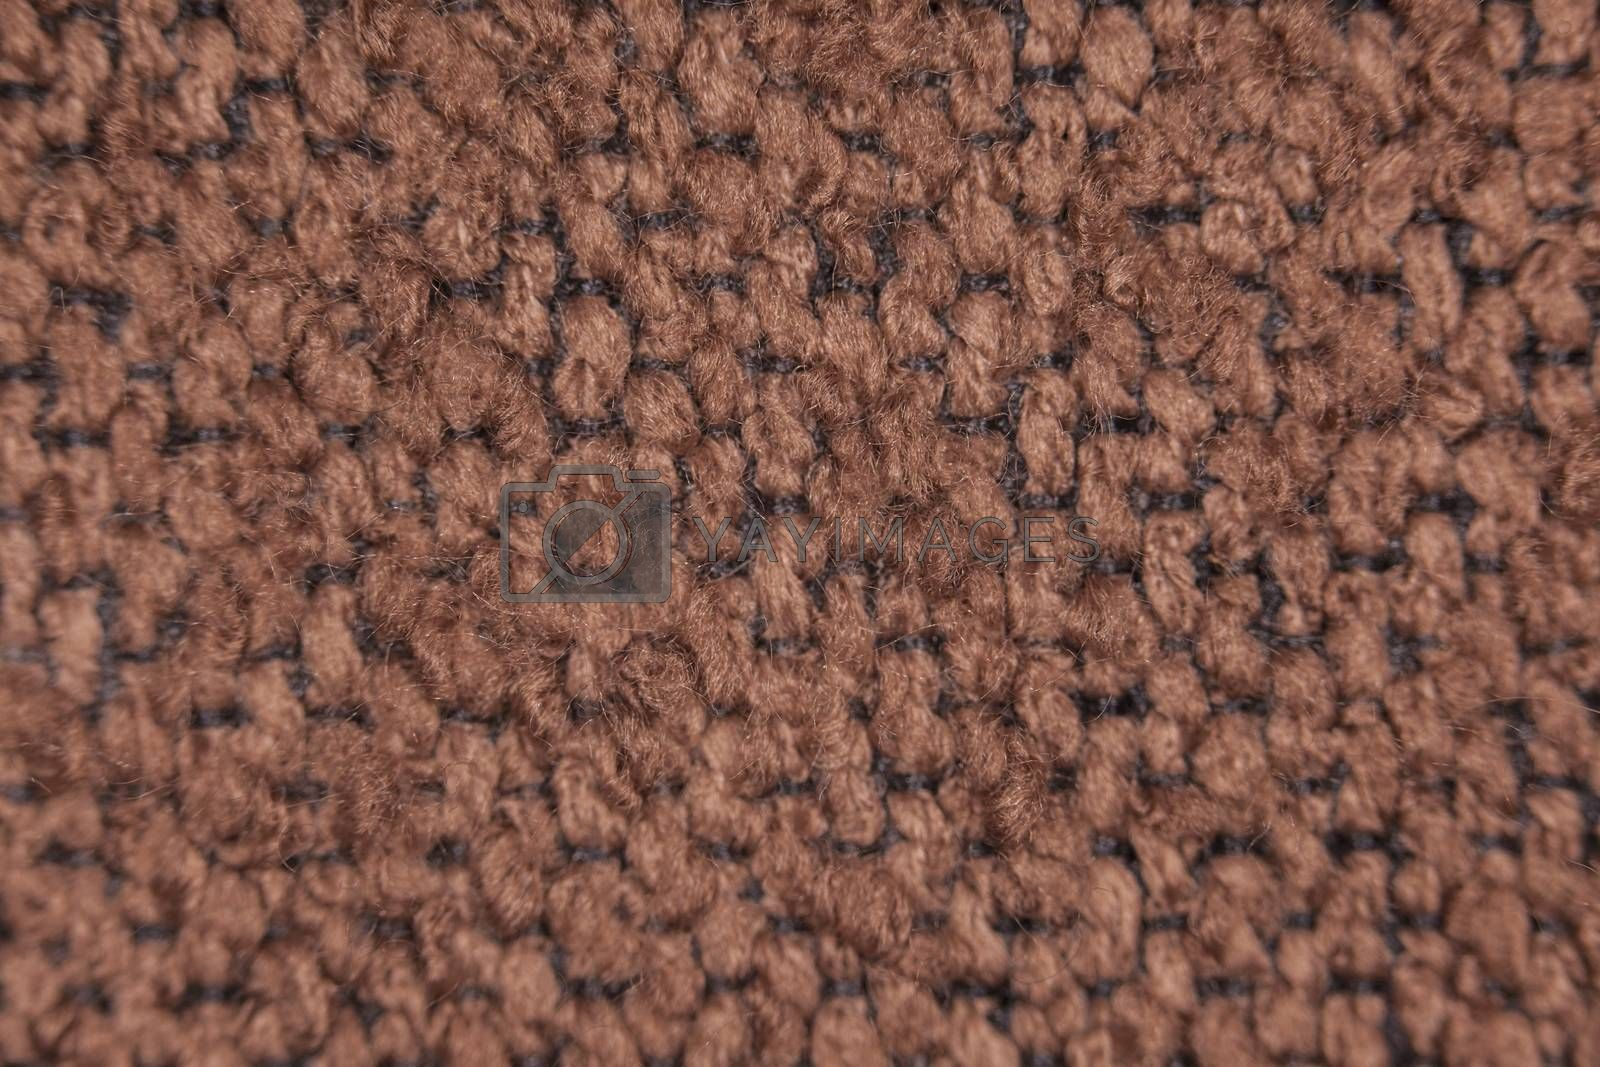 brown material, textured textiles, background